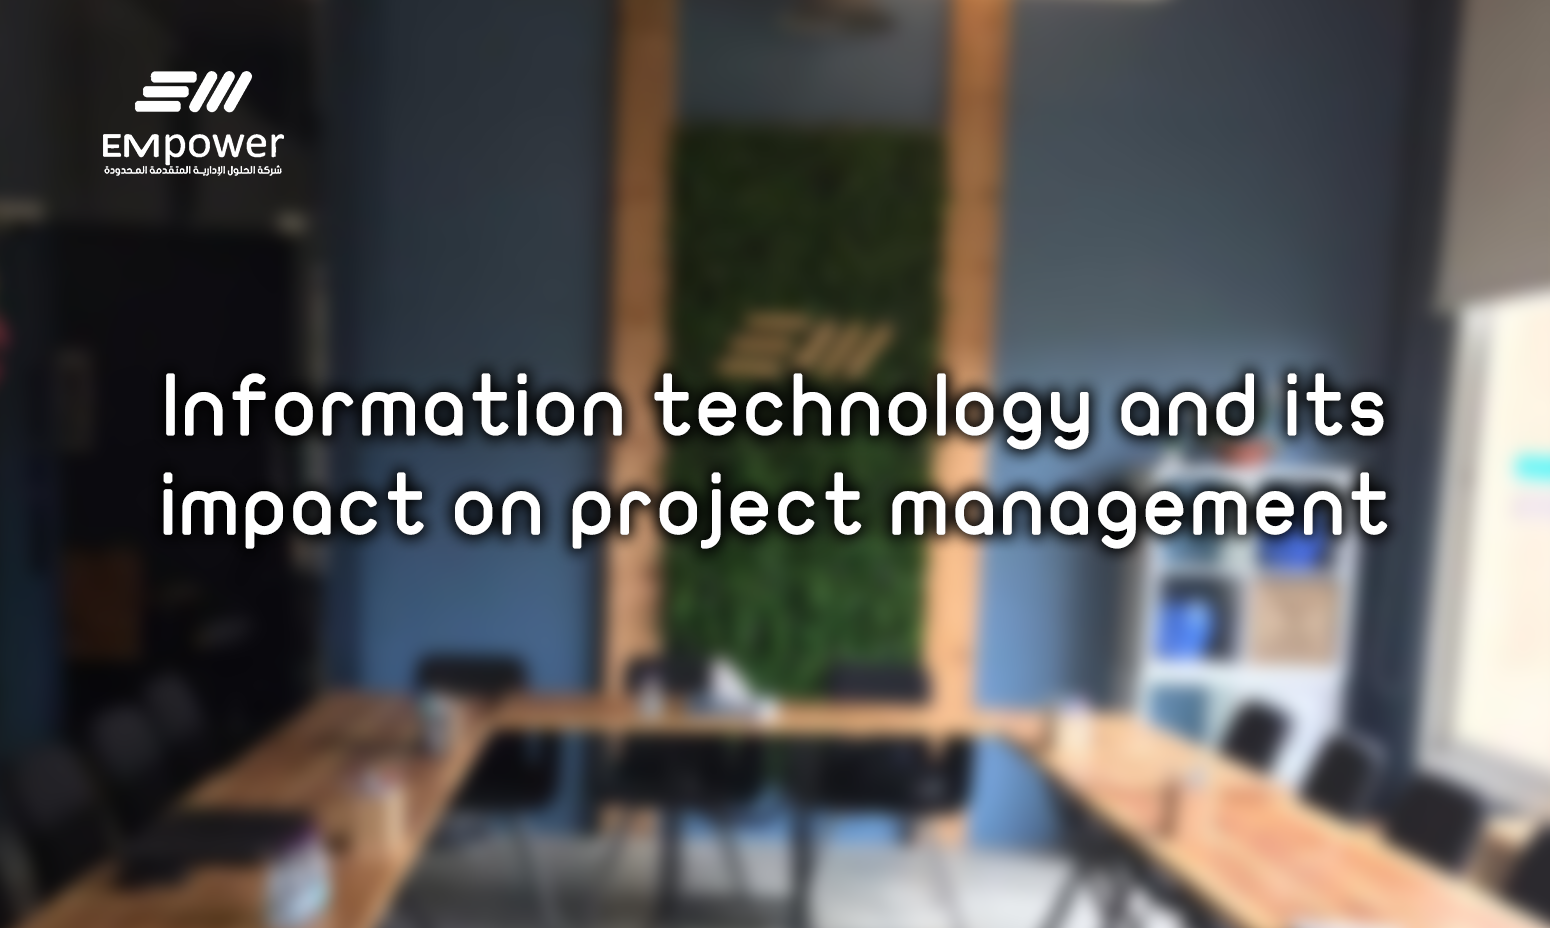 Information technology and its impact on project management